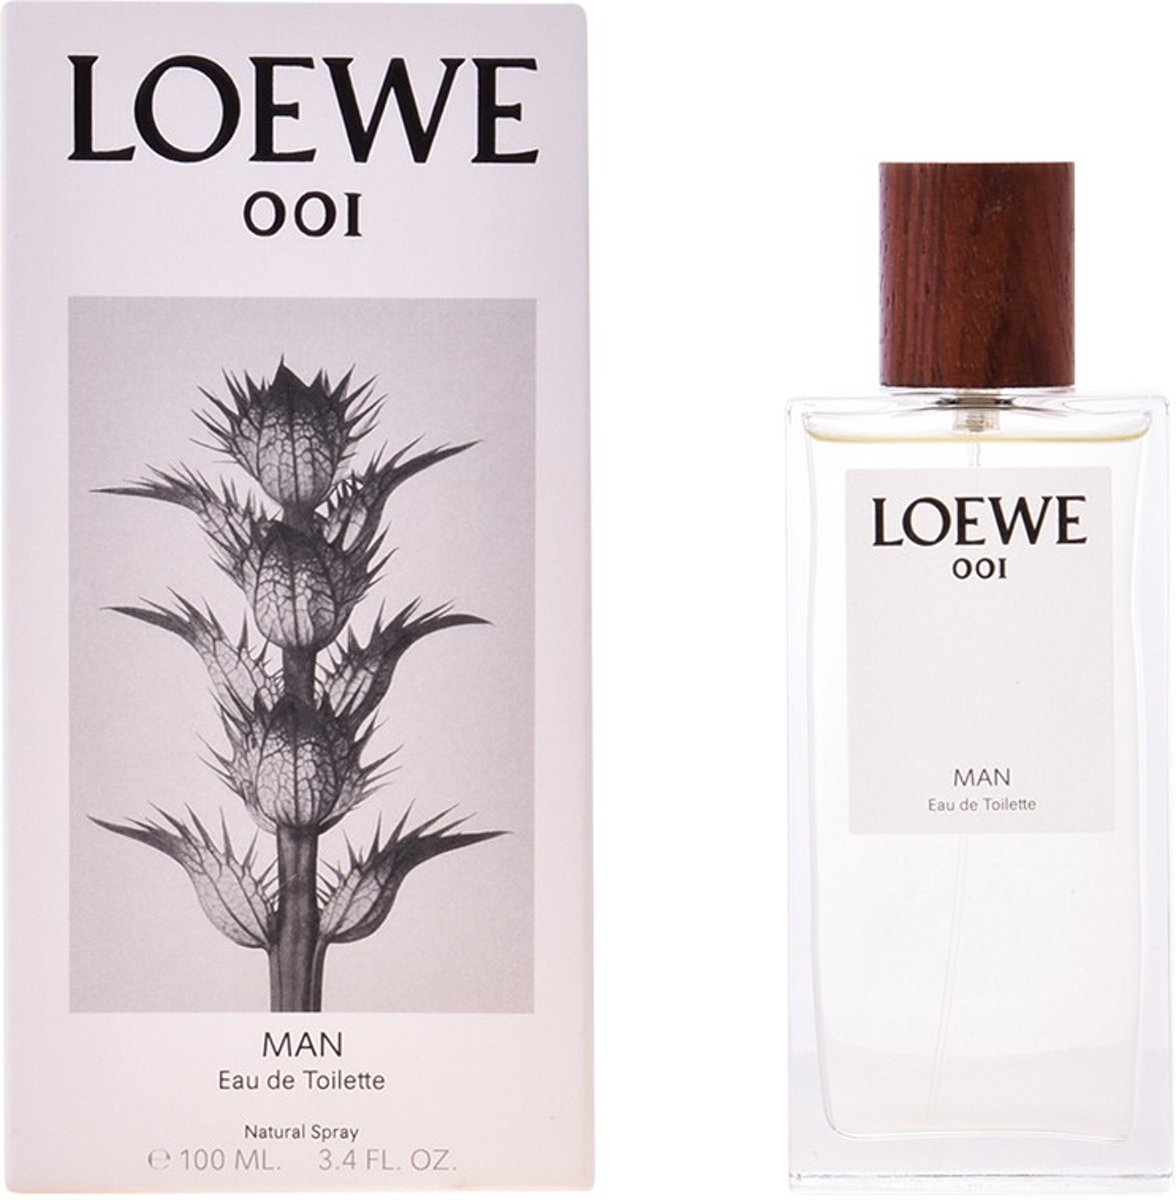 MULTI BUNDEL 2 stuks LOEWE 001 MAN Eau de Toilette Spray 100 ml